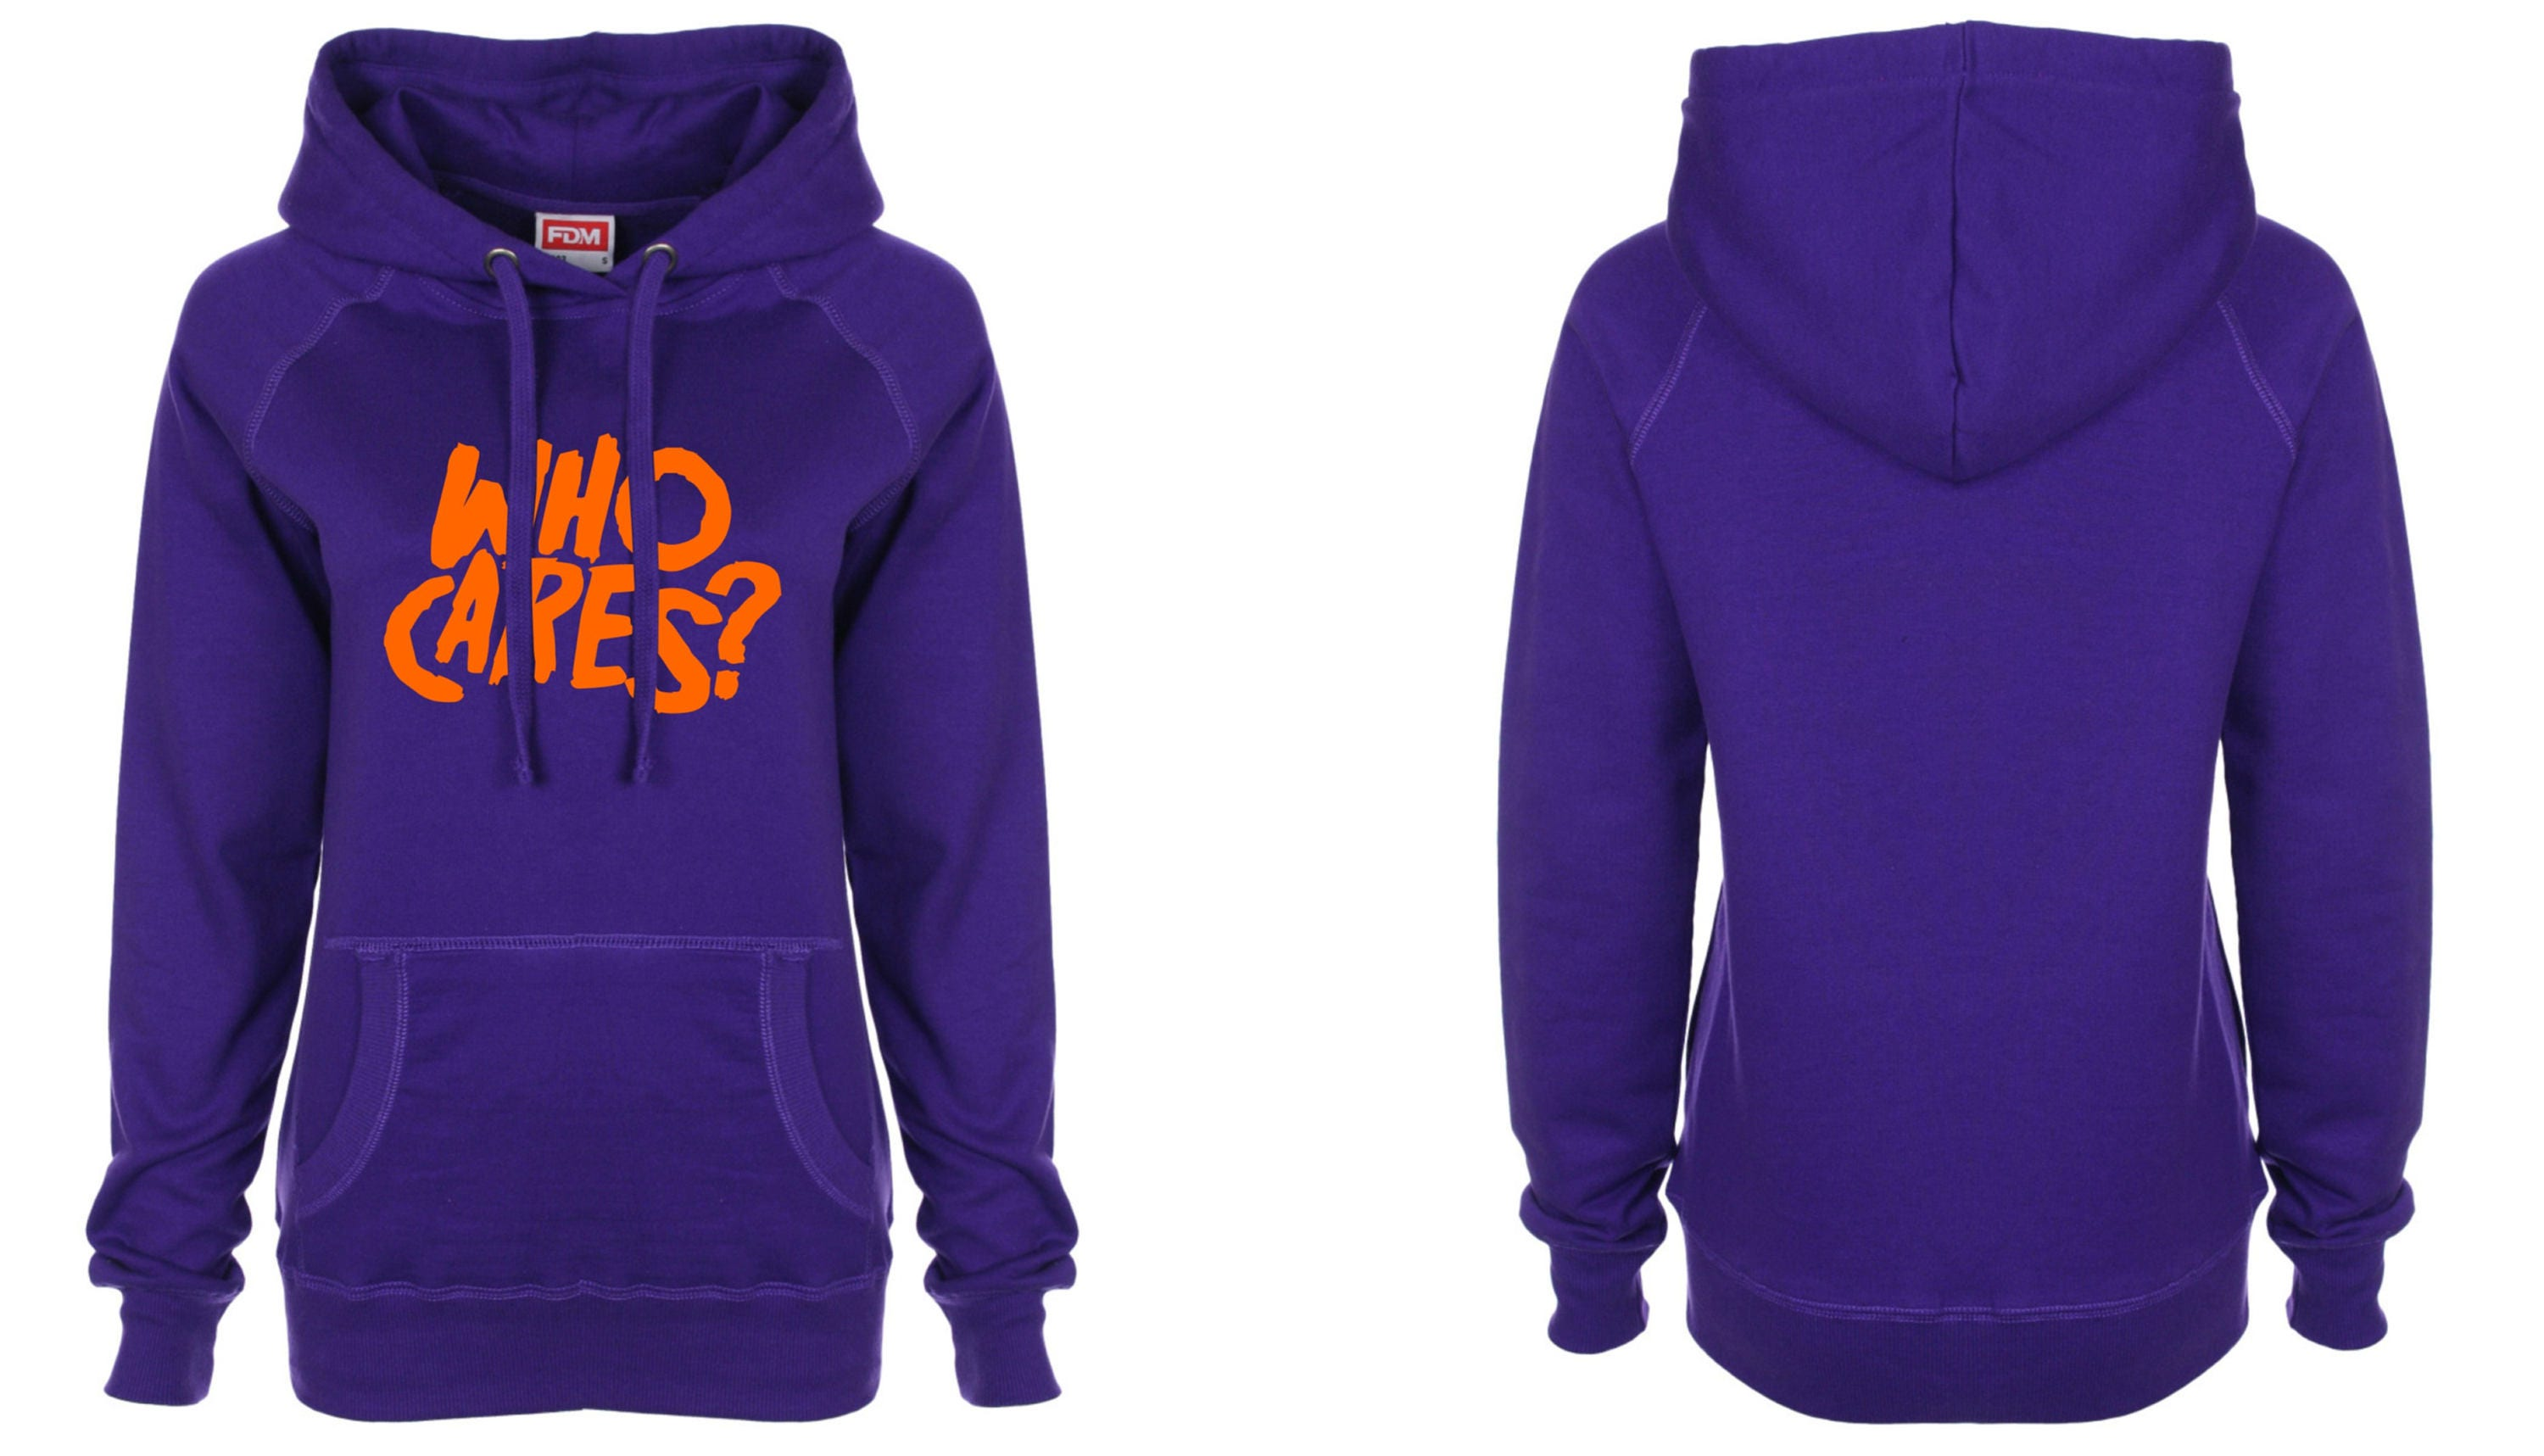 Ladies Christmas Gifts.Who Cares Women S Hoodie Retro Gifts For Her Ladies